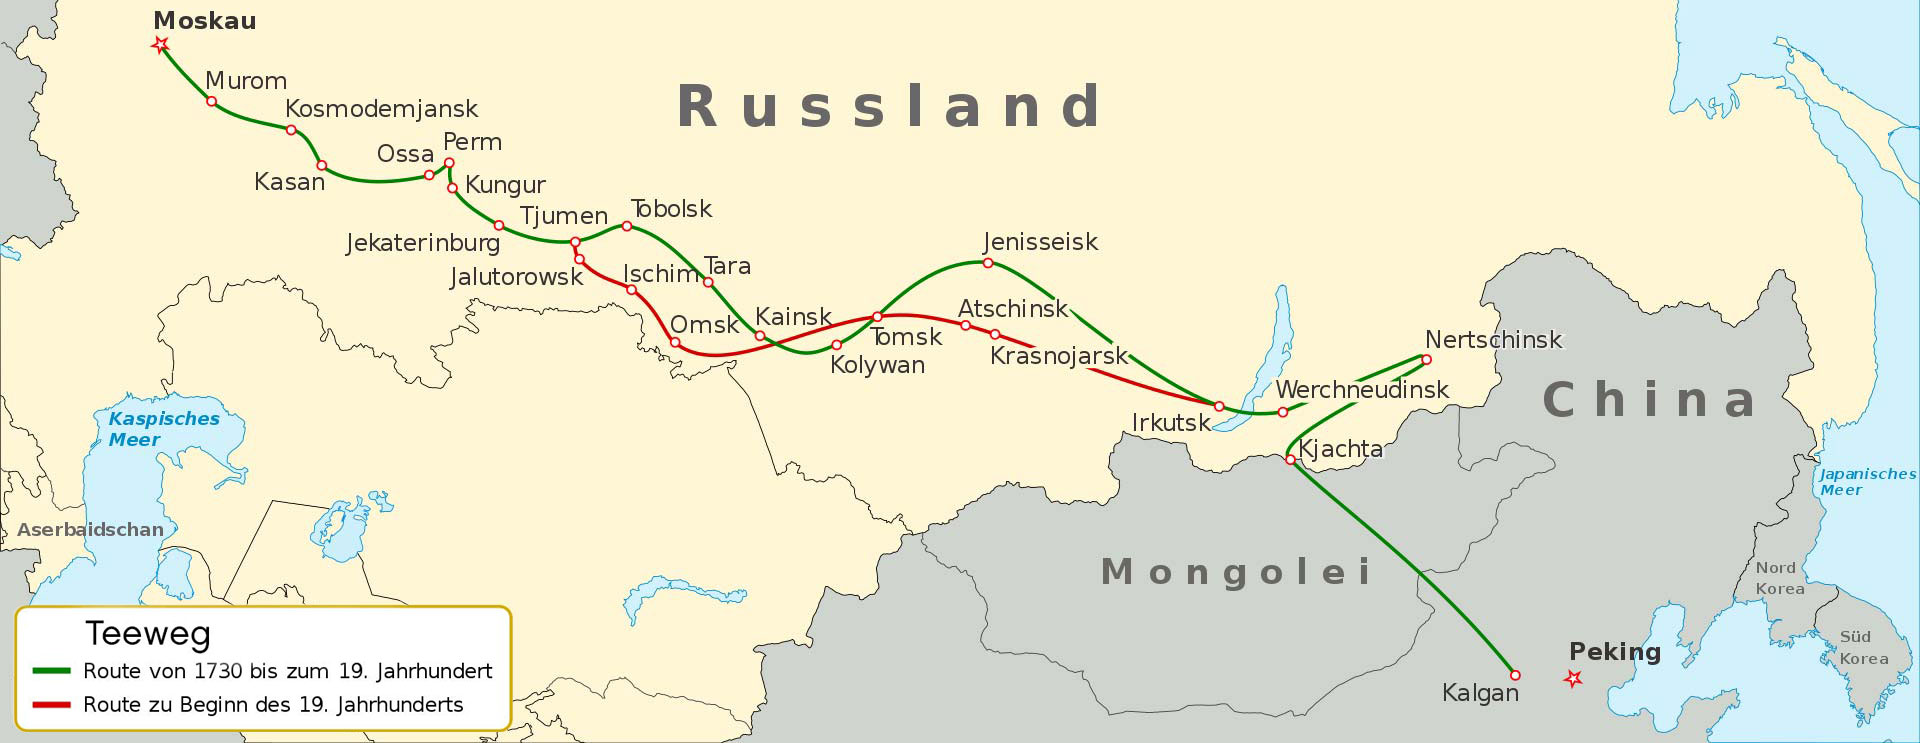 Der Teeweg China Russland